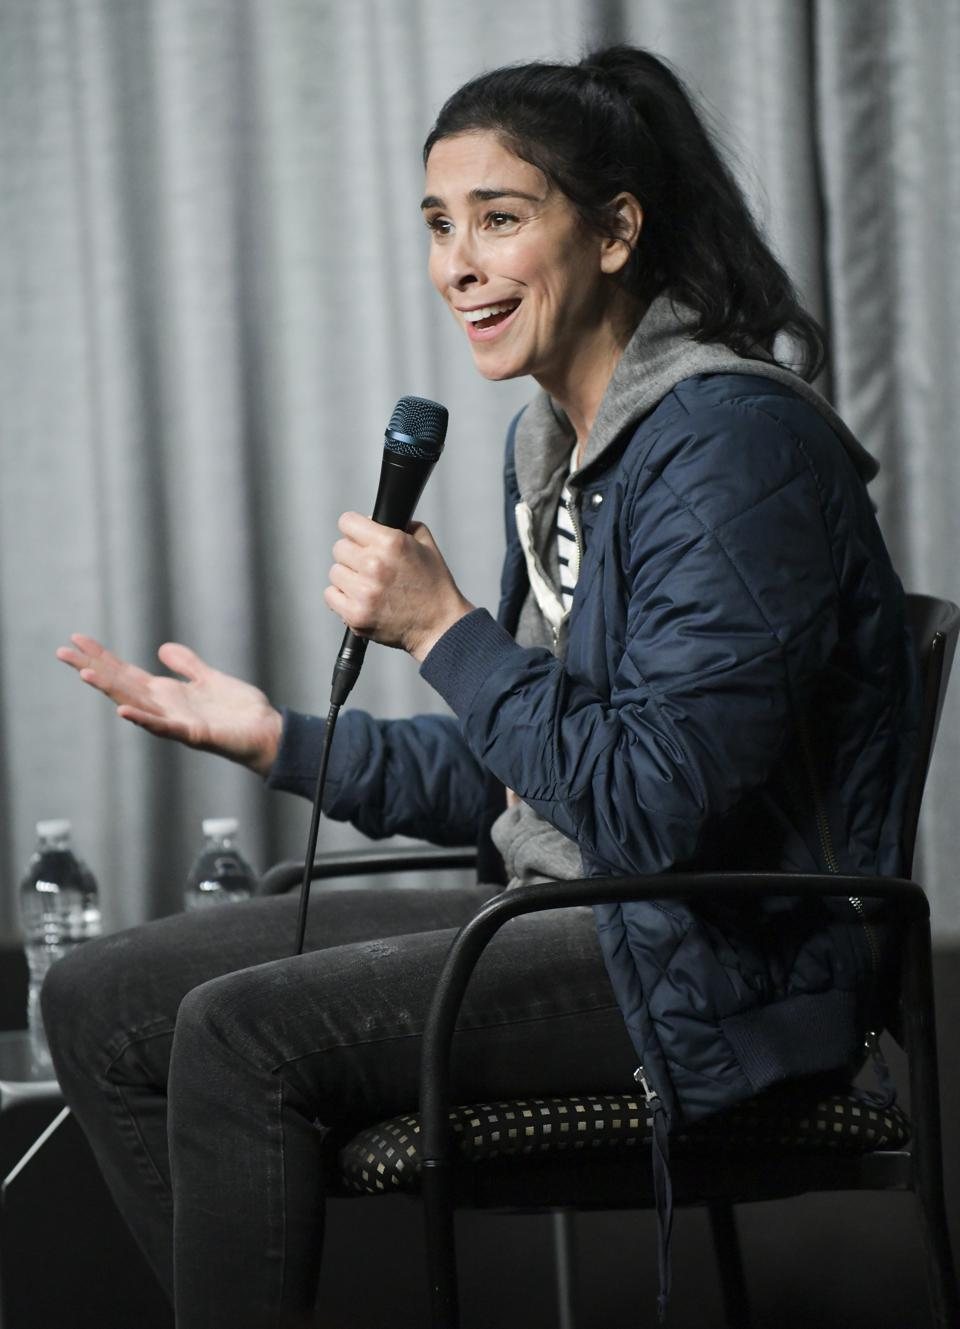 American comedian Sarah SIlverman responded to a crude and angry tweet with love and kindness (Photo by Rodin Eckenroth/Getty Images)